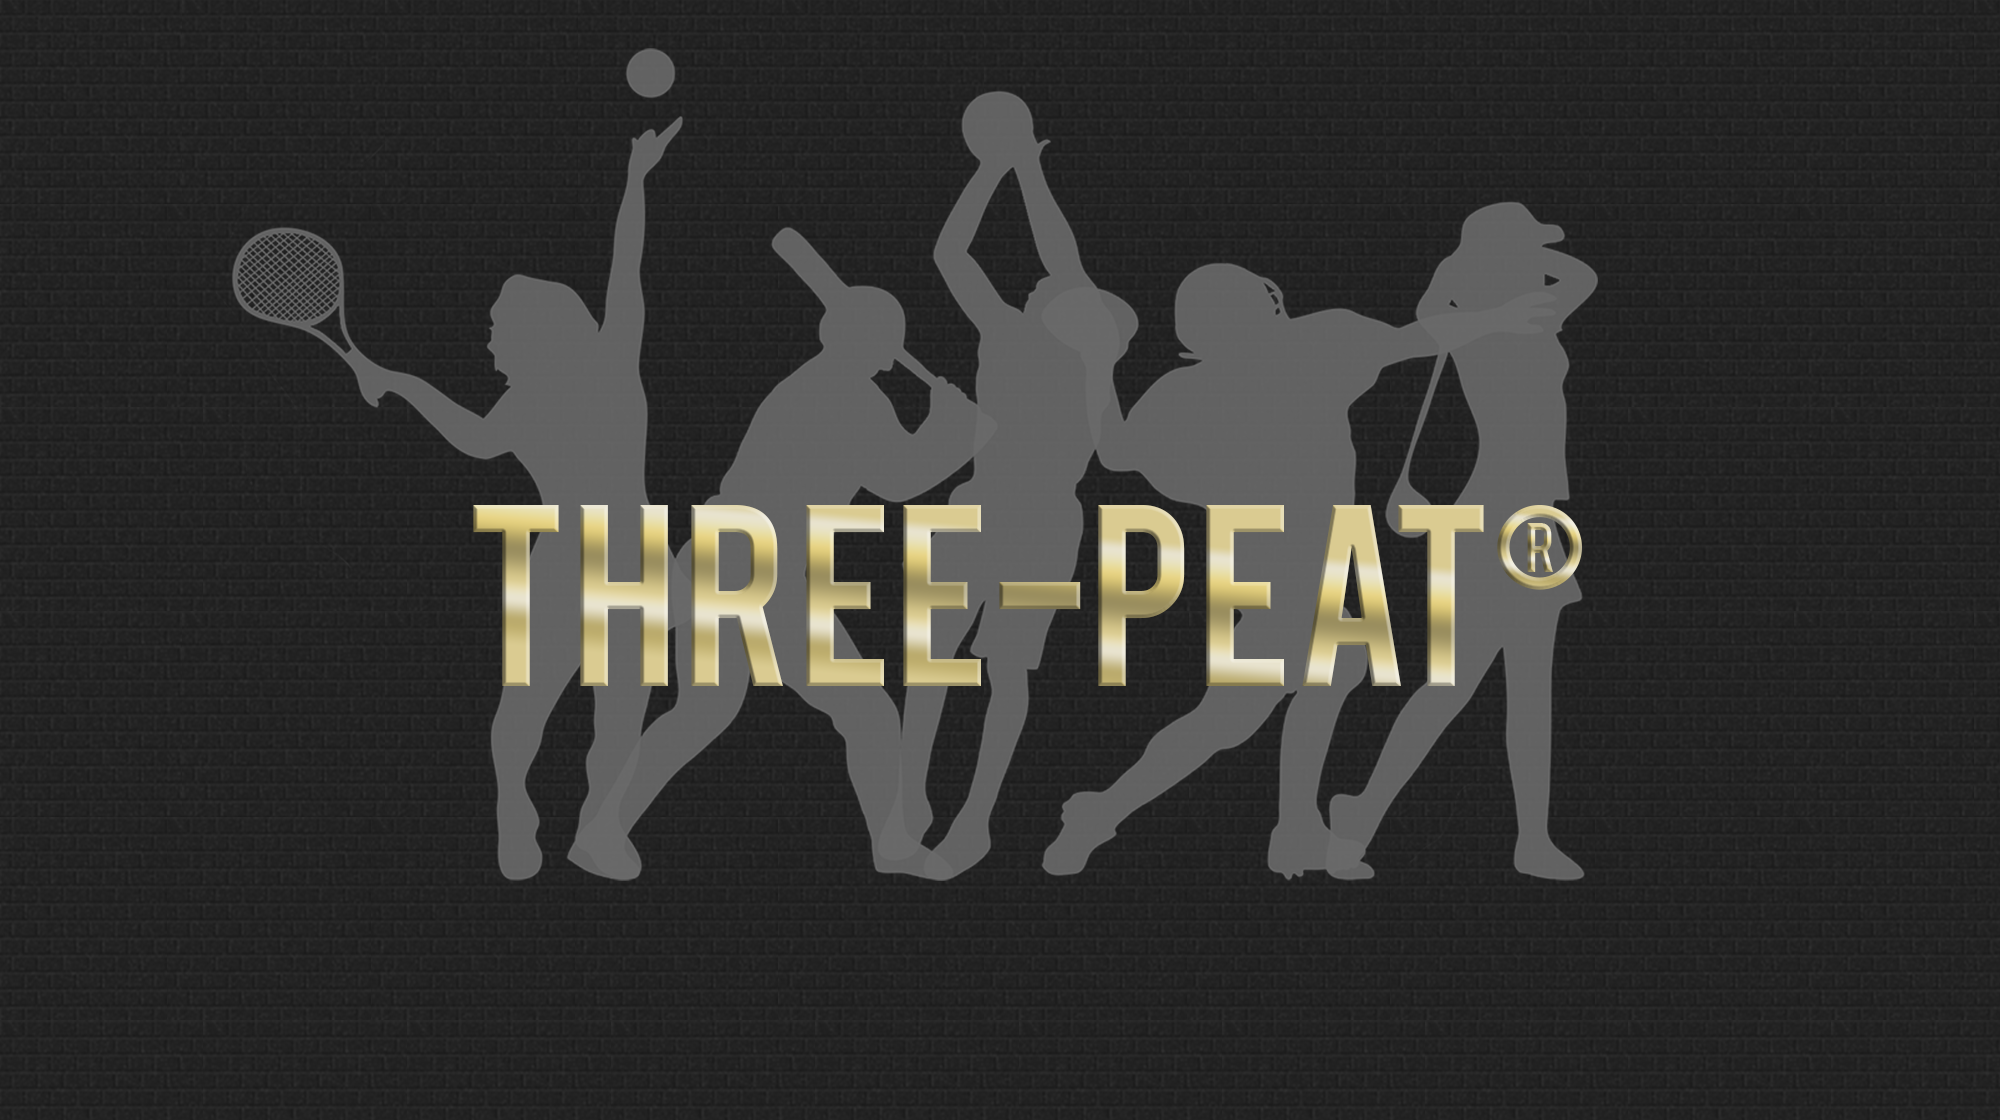 Three Peat text over silhouettes of tennis player, baseball player, basketball player, football player, and golfer.